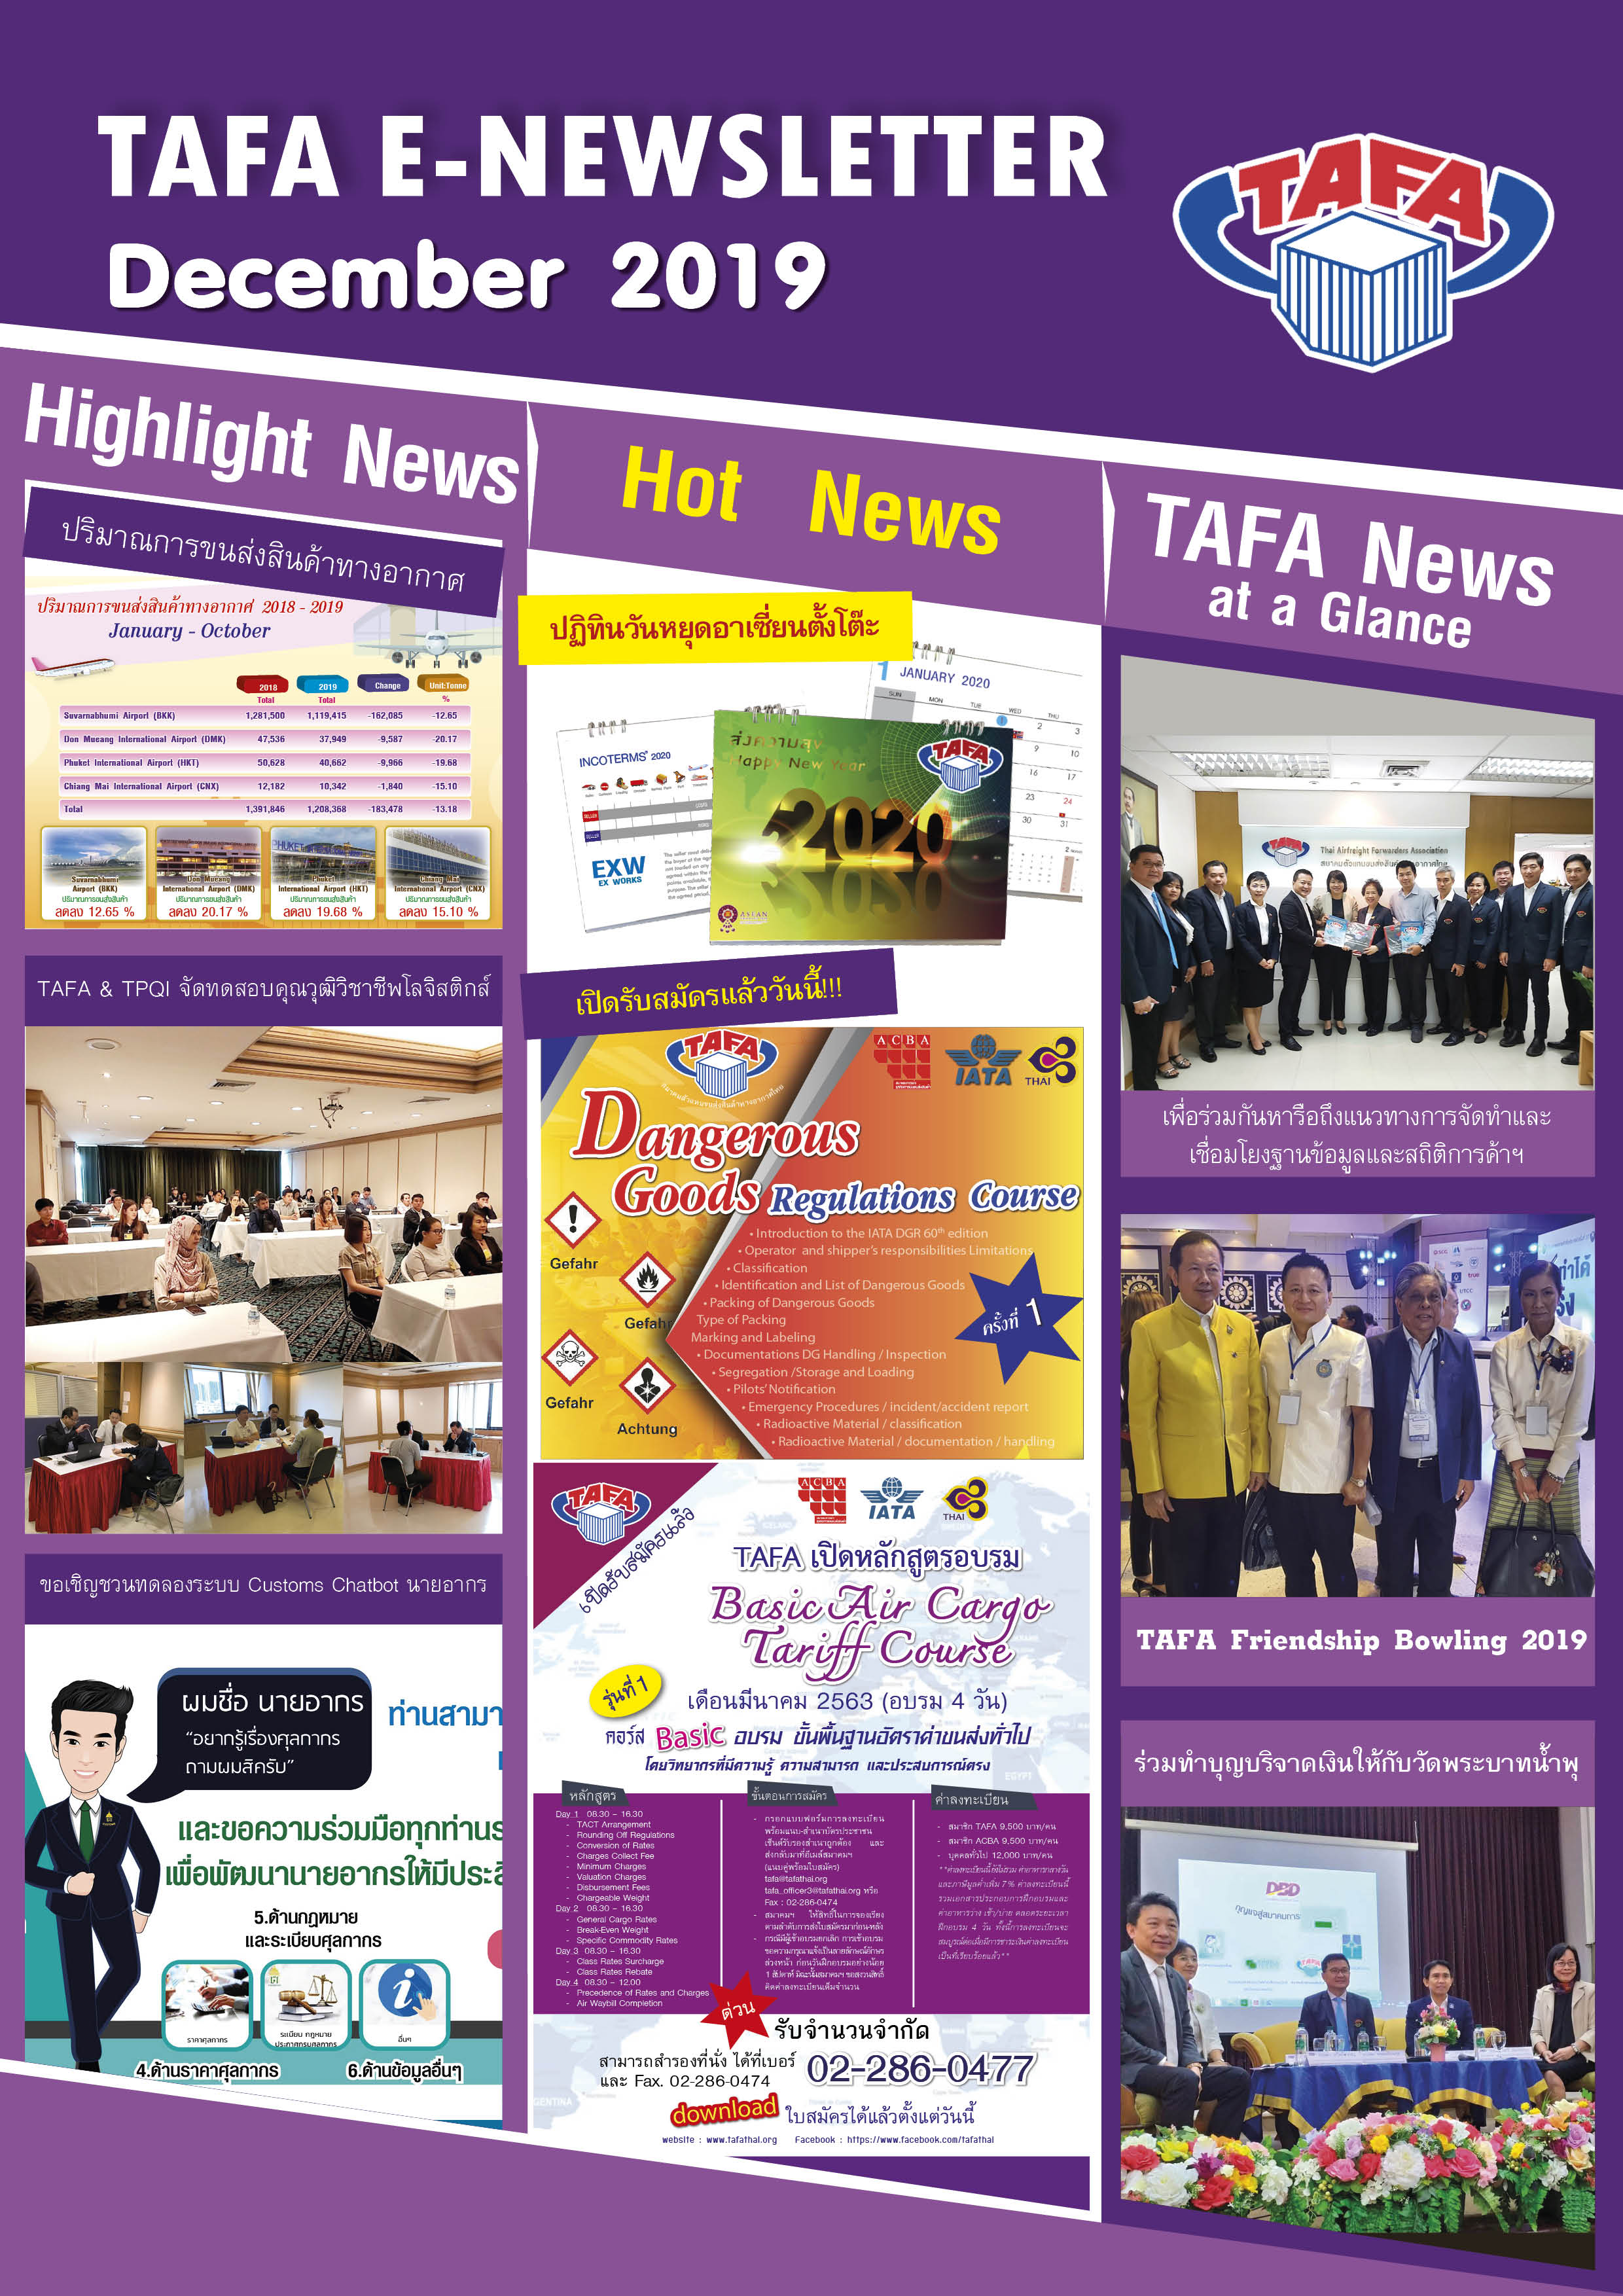 TAFA Newsletter, Issue 12 of  December 2019